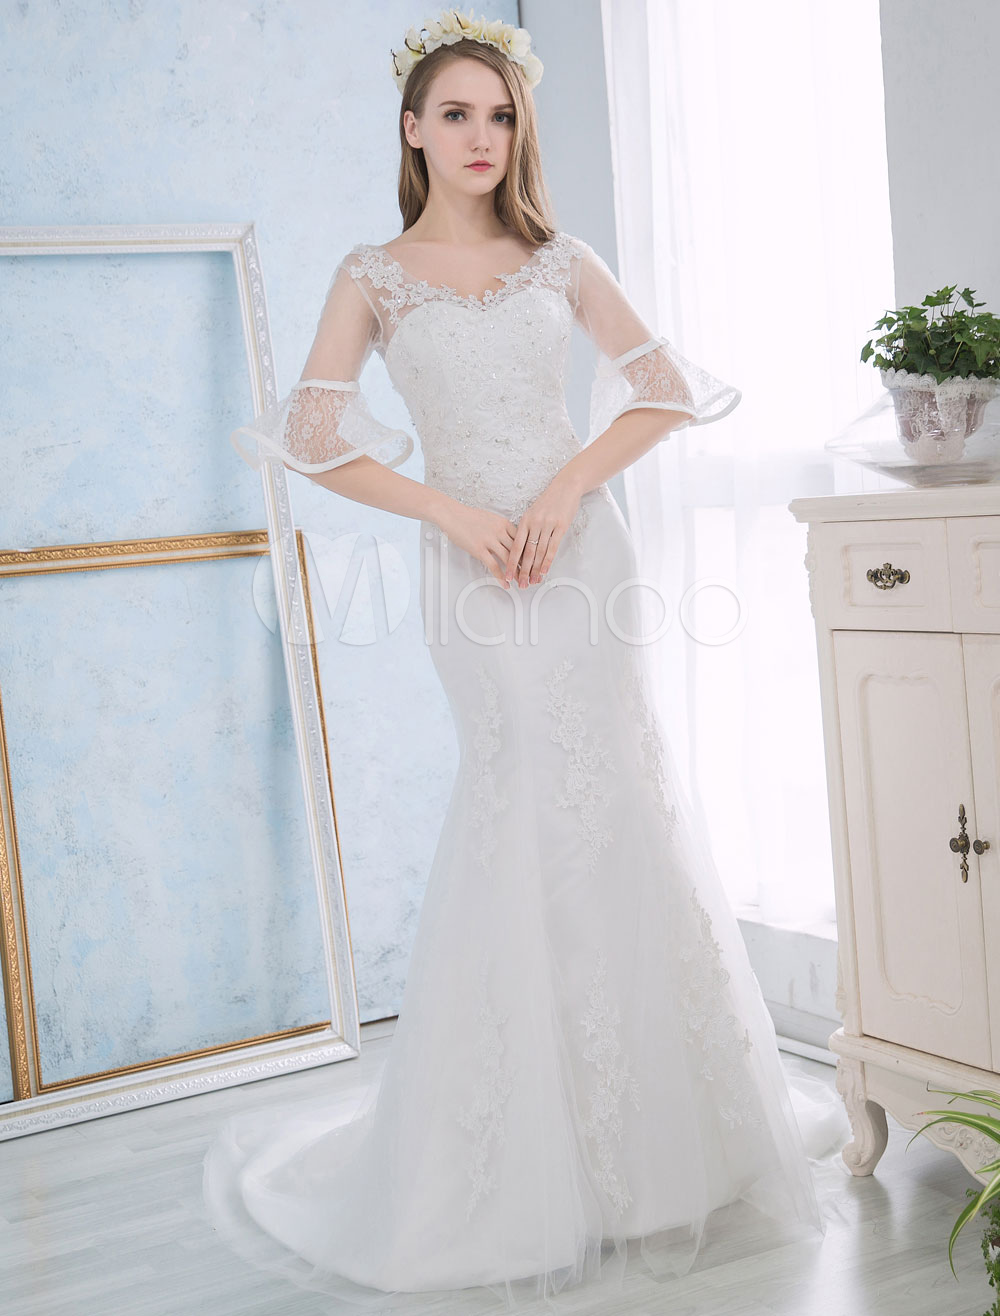 Buy Mermaid Wedding Dresses Ivory Lace Applique Bridal Dress Beaded Half Sleeve V Neck V Back Wedding Gown With Train for $153.99 in Milanoo store